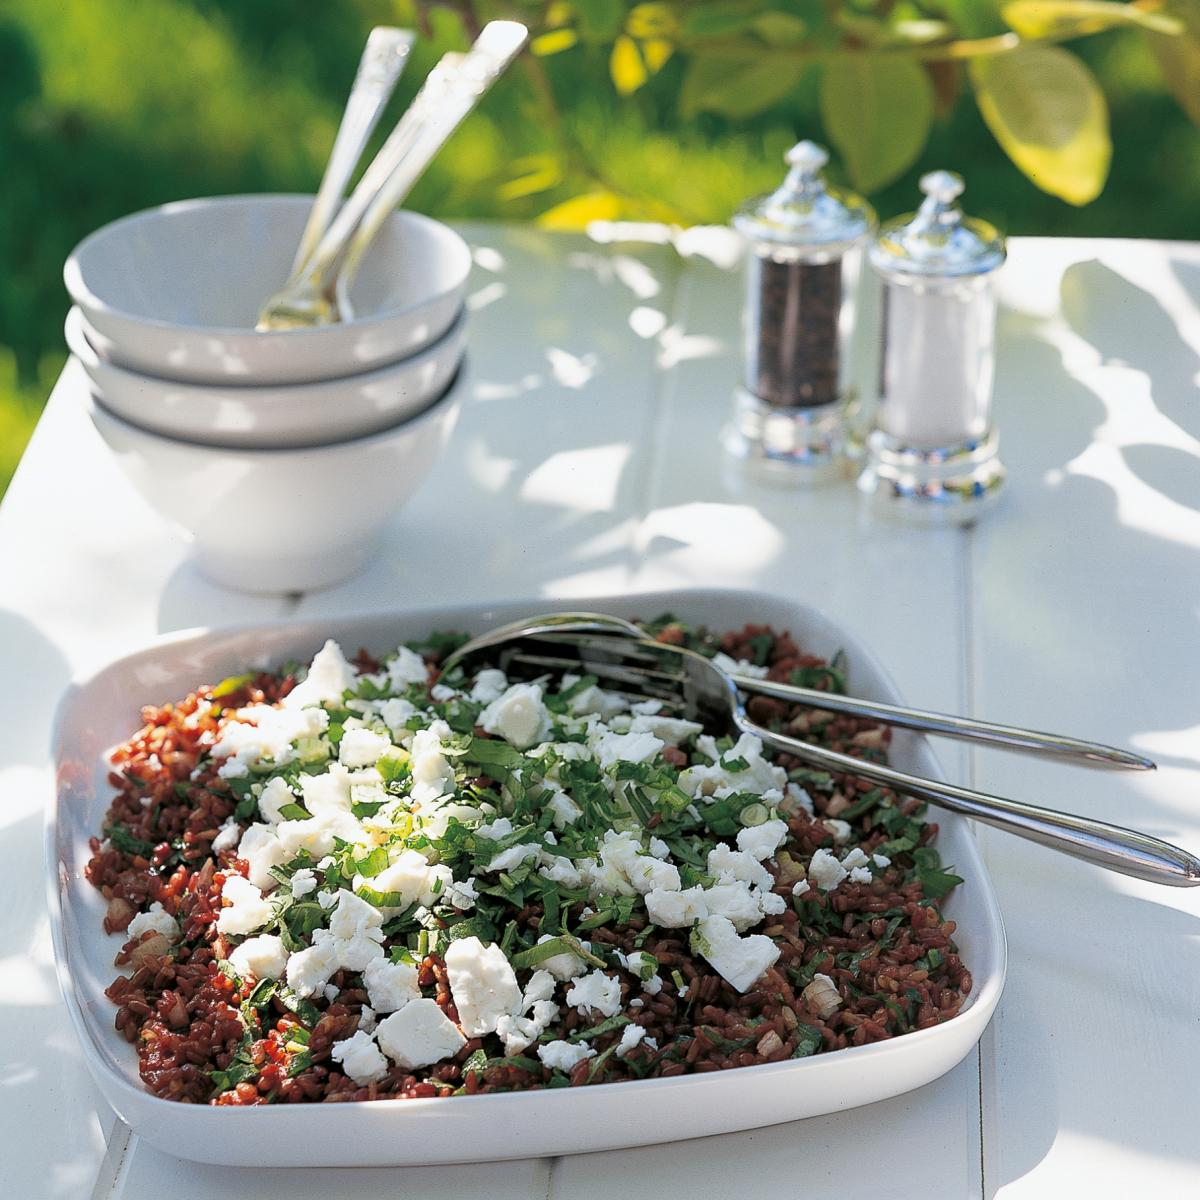 A picture of Delia's Camargue Red Rice Salad with Feta Cheese recipe